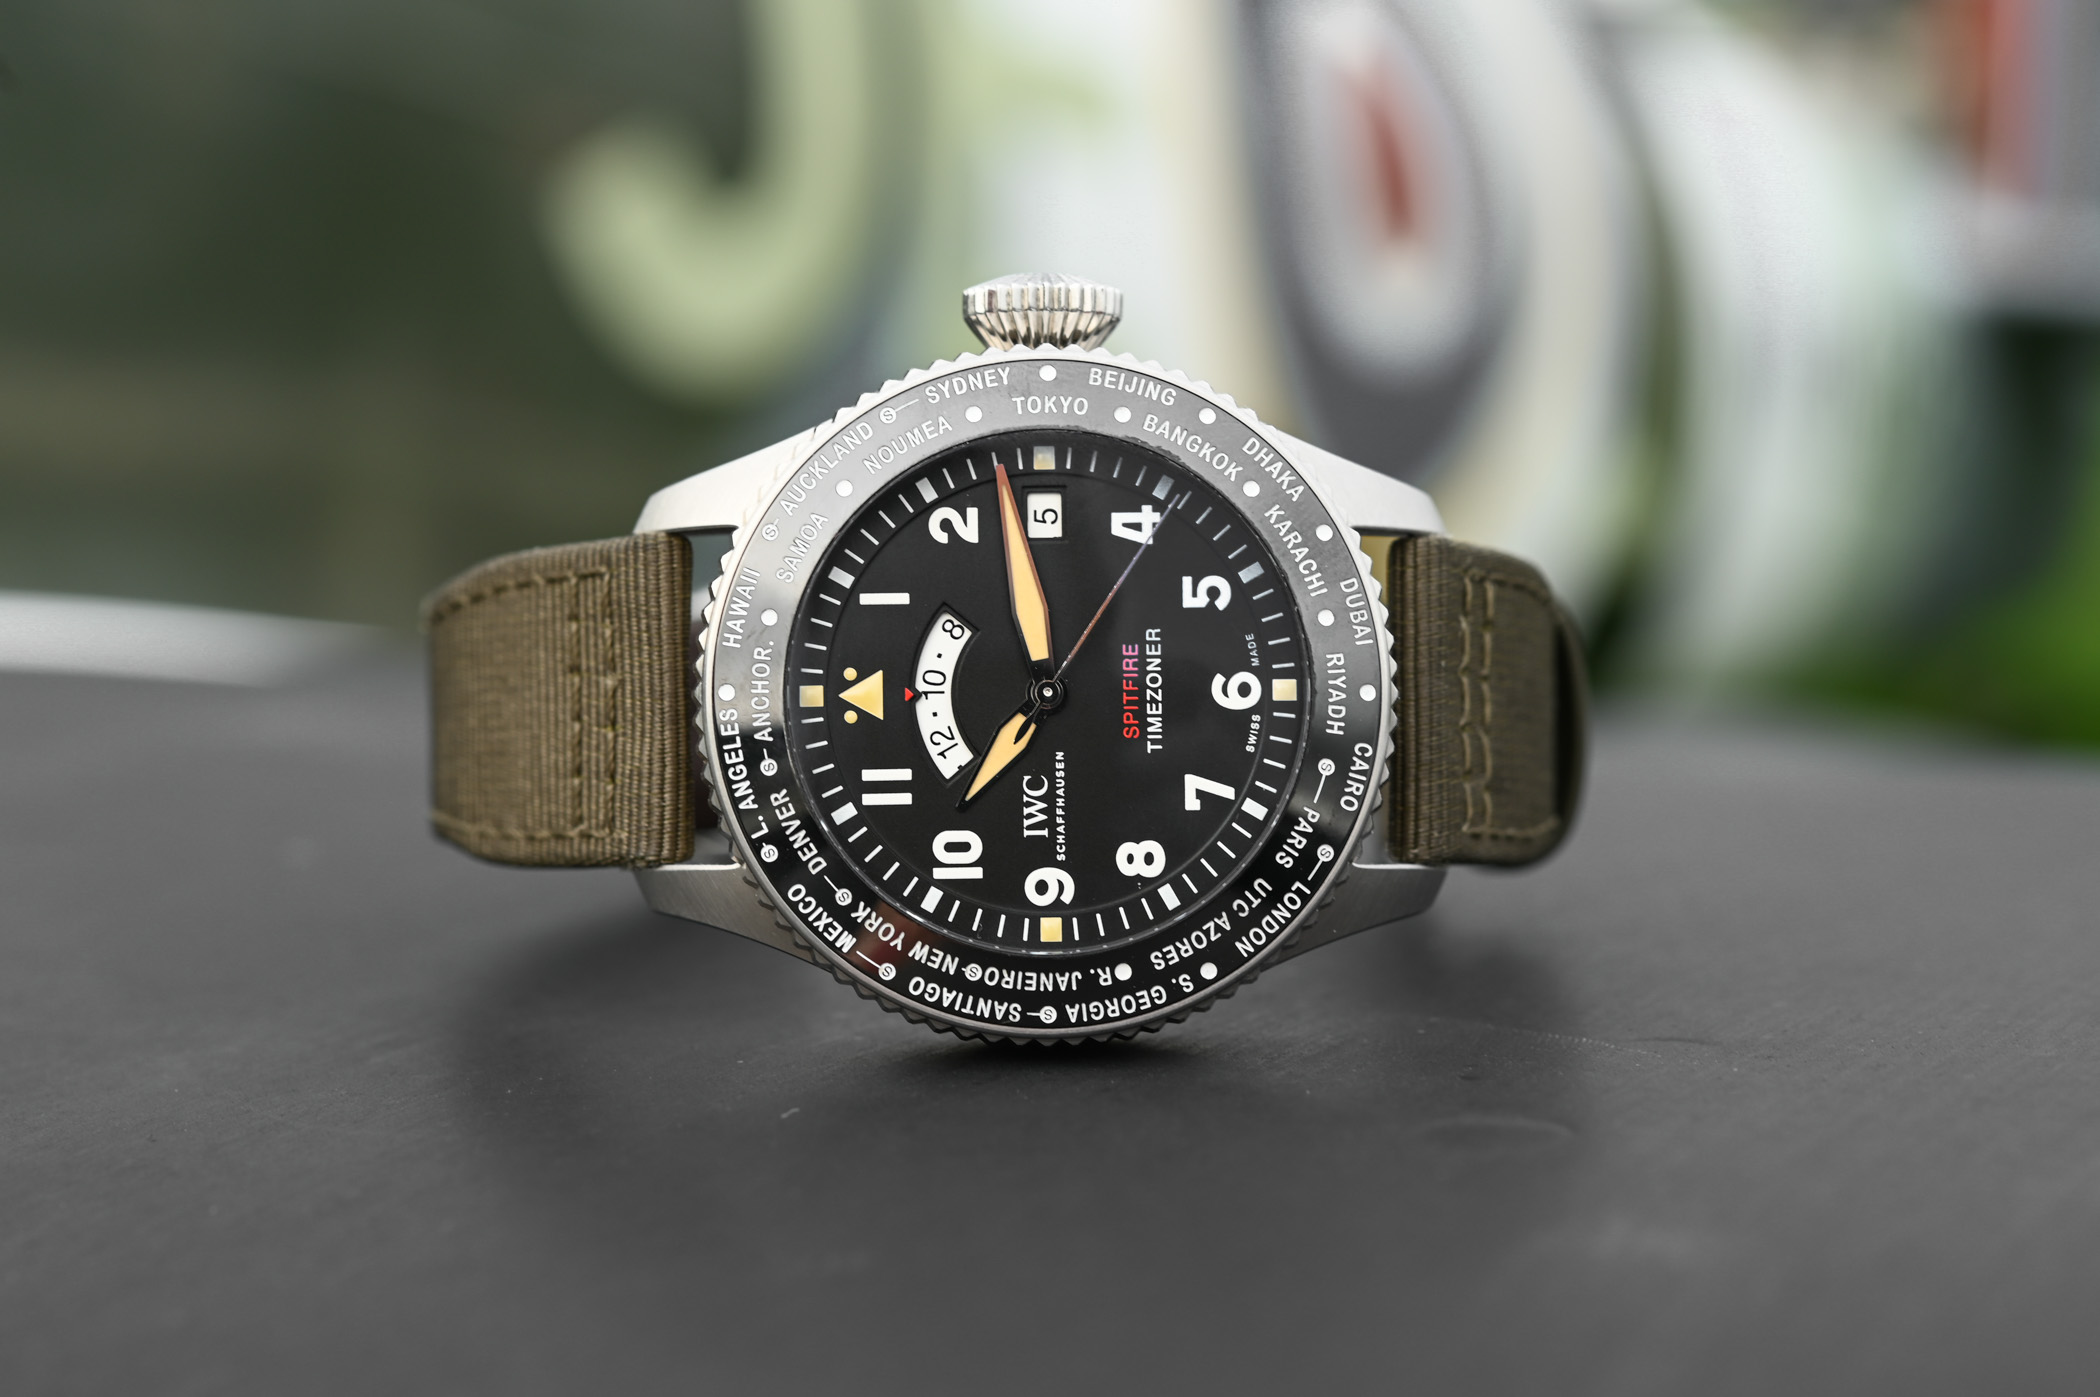 IWC Pilots Watch Timezoner Spitfire Edition The Longest Flight IW395501 - SIHH 2019